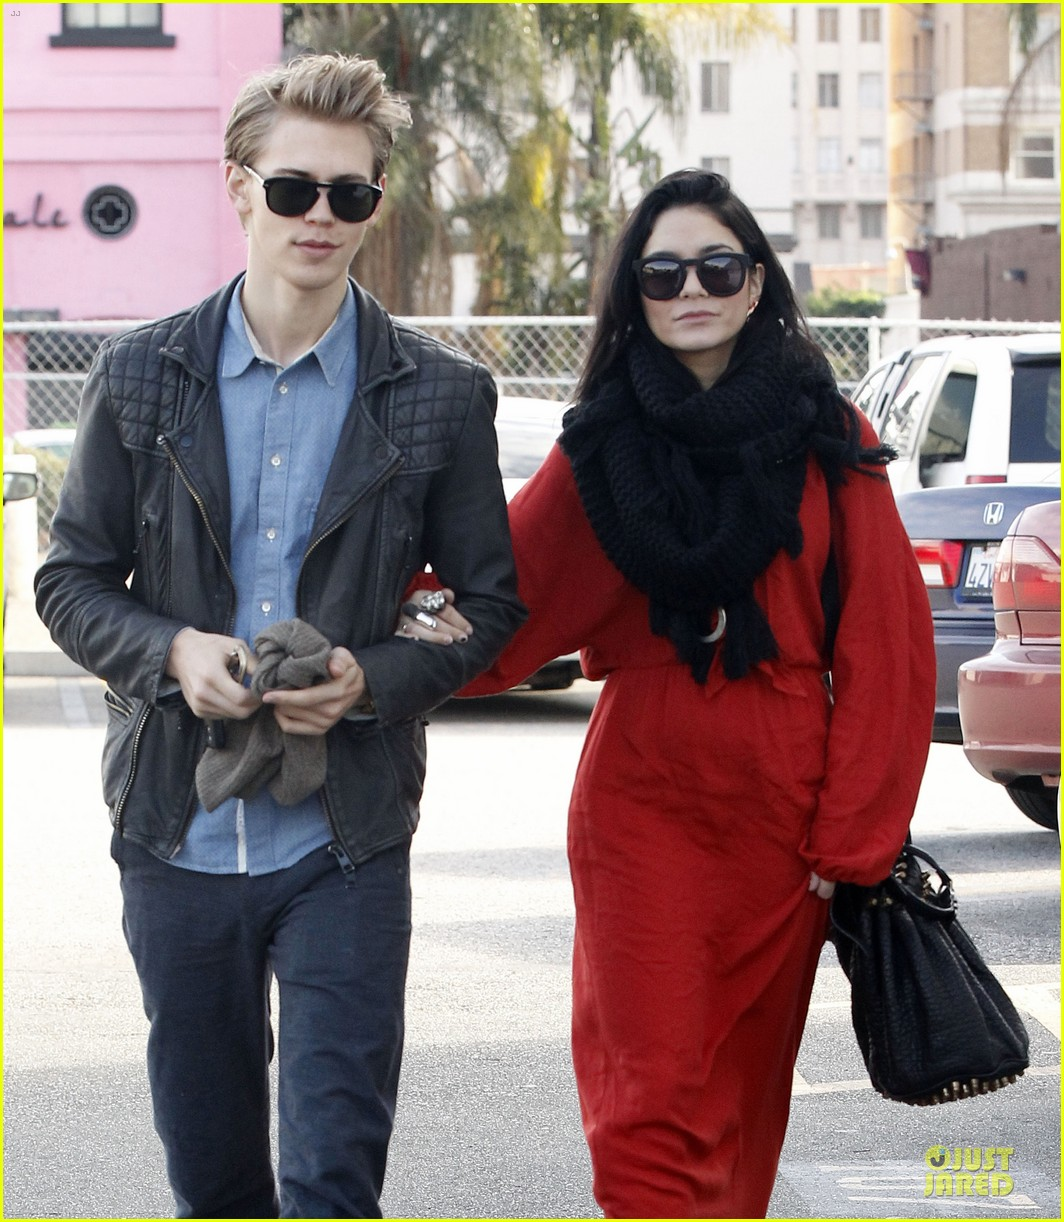 vanessa hudgens & austin butler church going couple 042782611